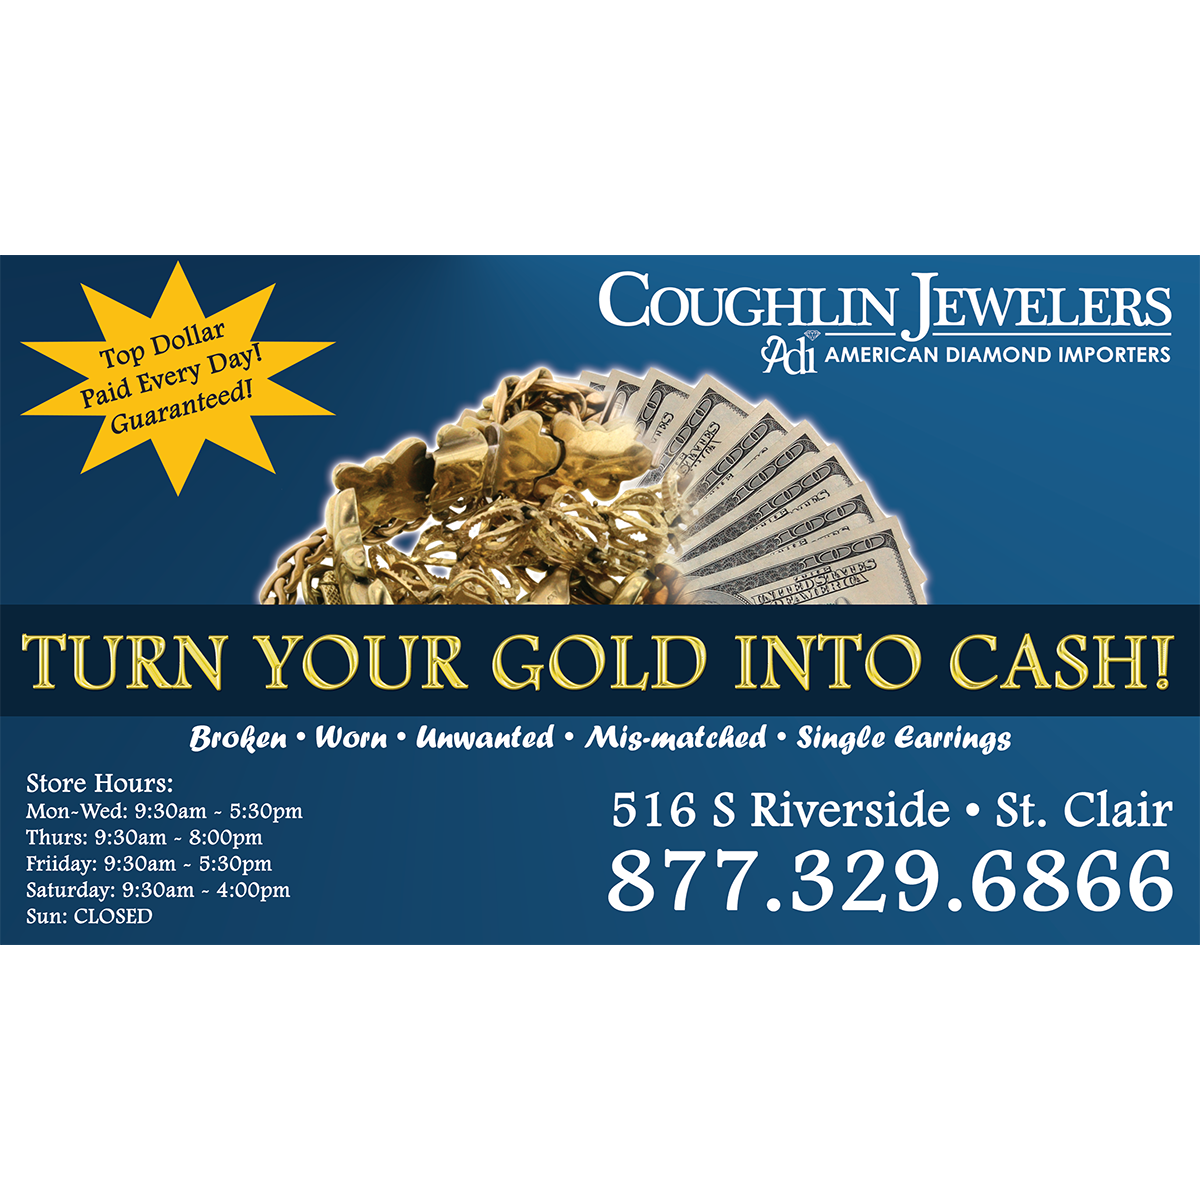 Coughlin Jewelers Gold Buying Ad